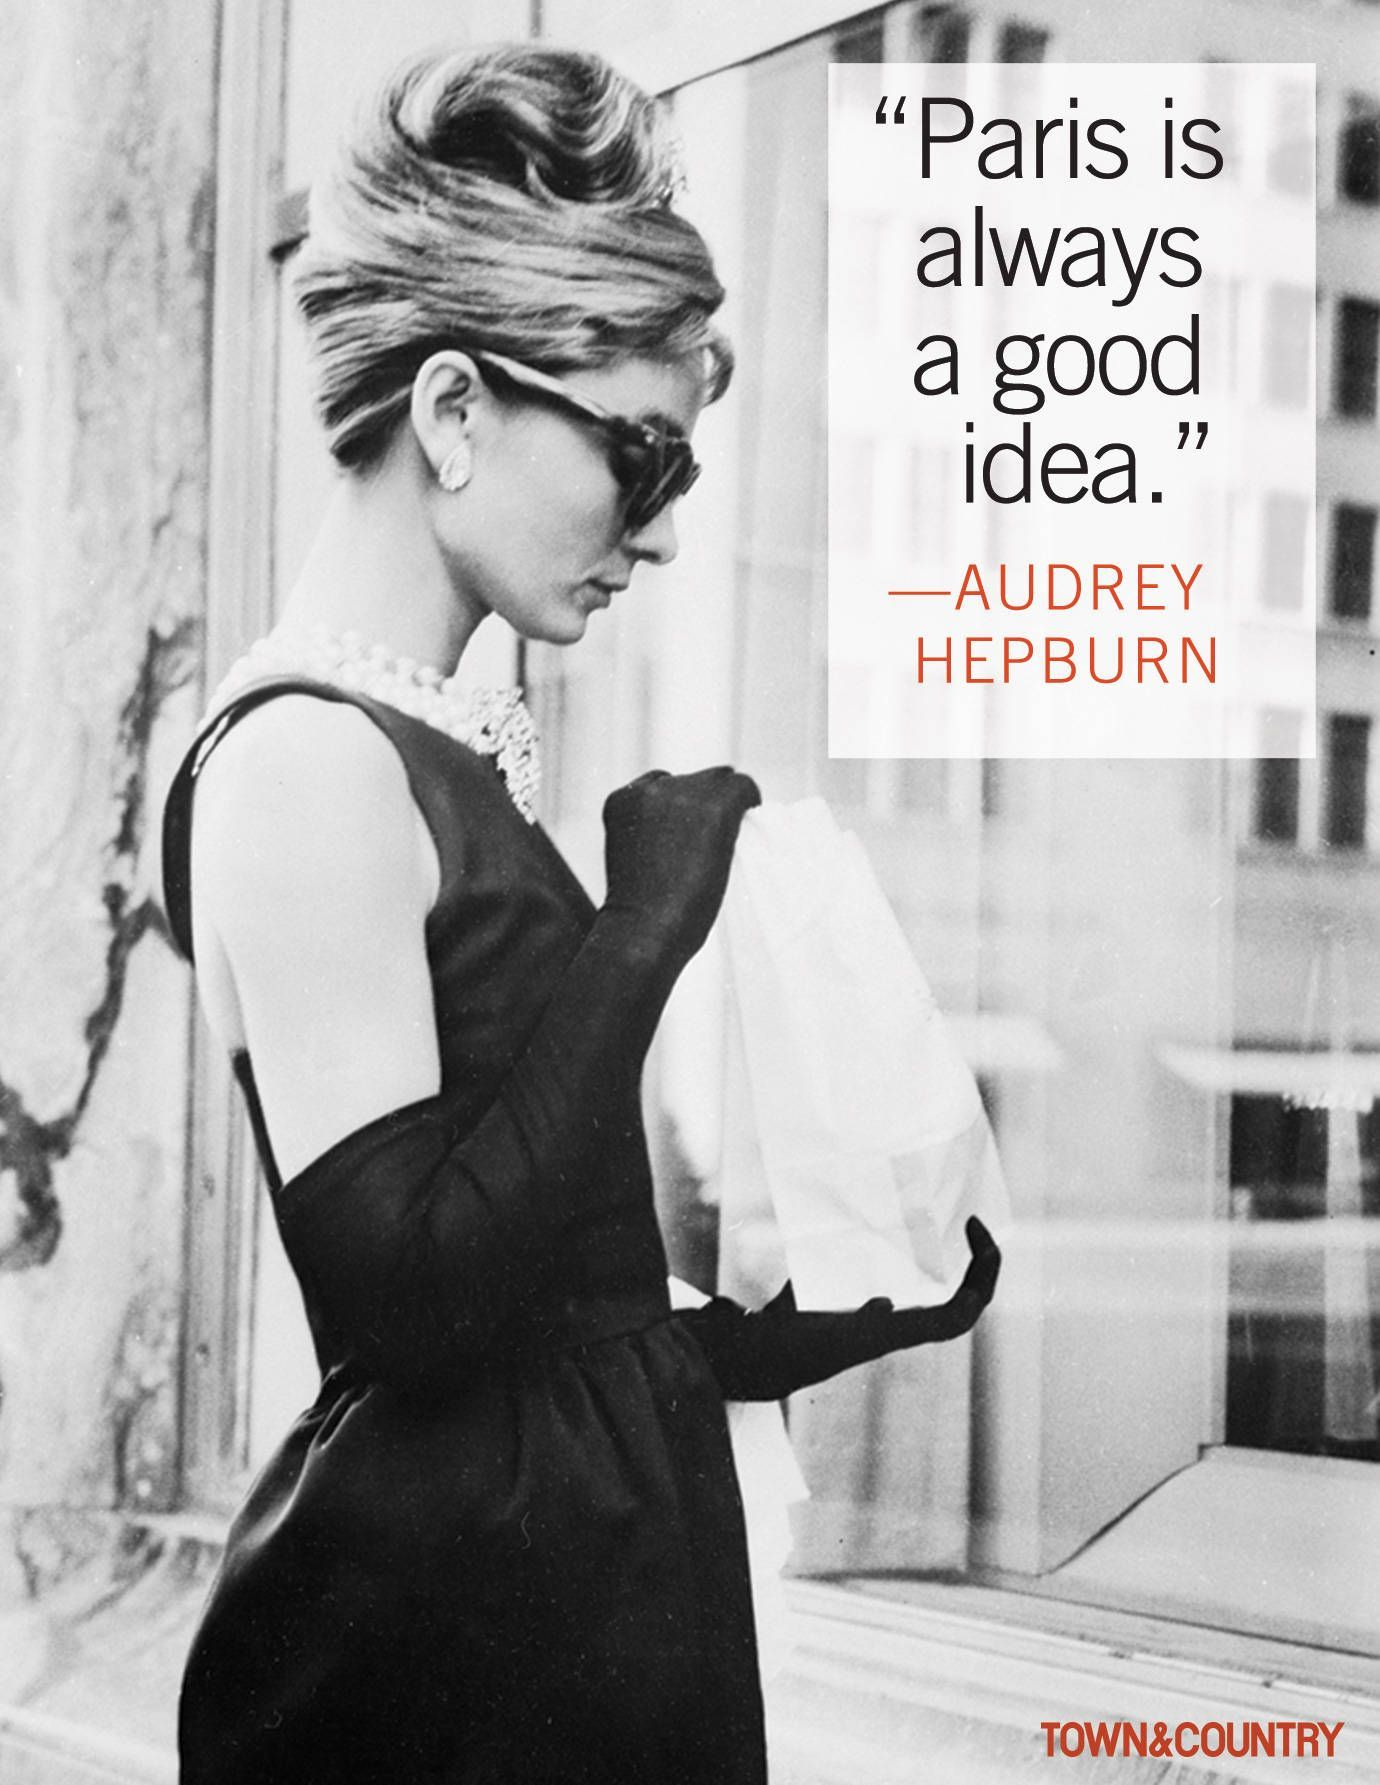 7 Of The Most Glamorous Audrey Hepburn Quotes Audrey Hepburn Quotes Aubrey Hepburn Hepburn